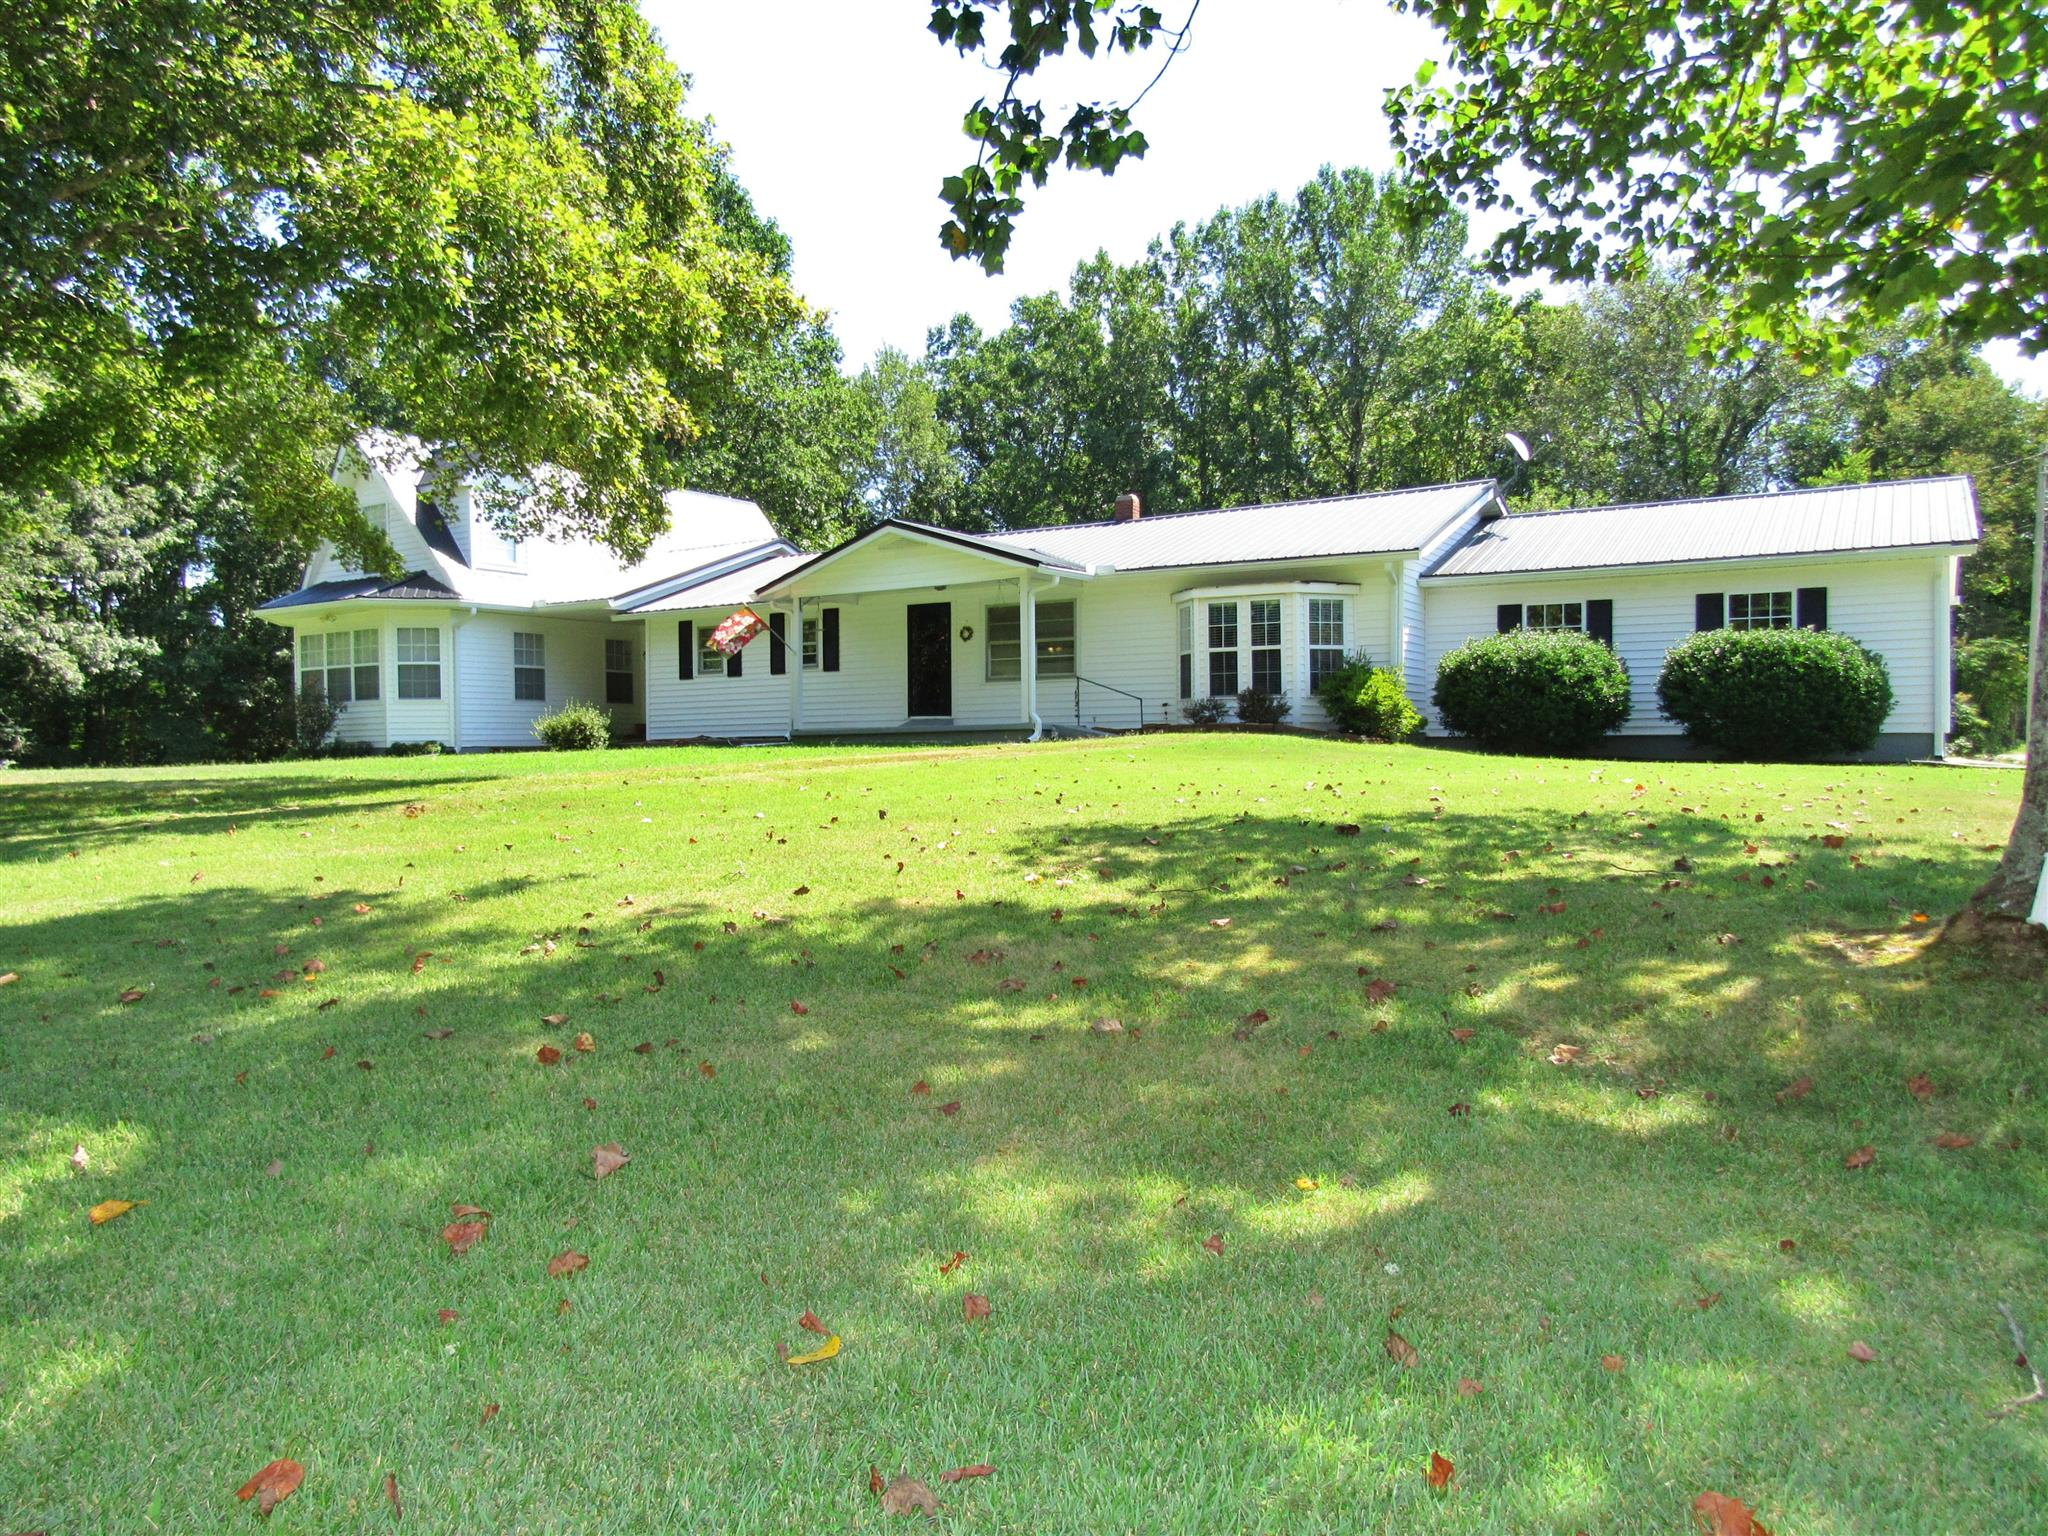 493 Old Highway 13 N, Linden, TN 37096 - Linden, TN real estate listing